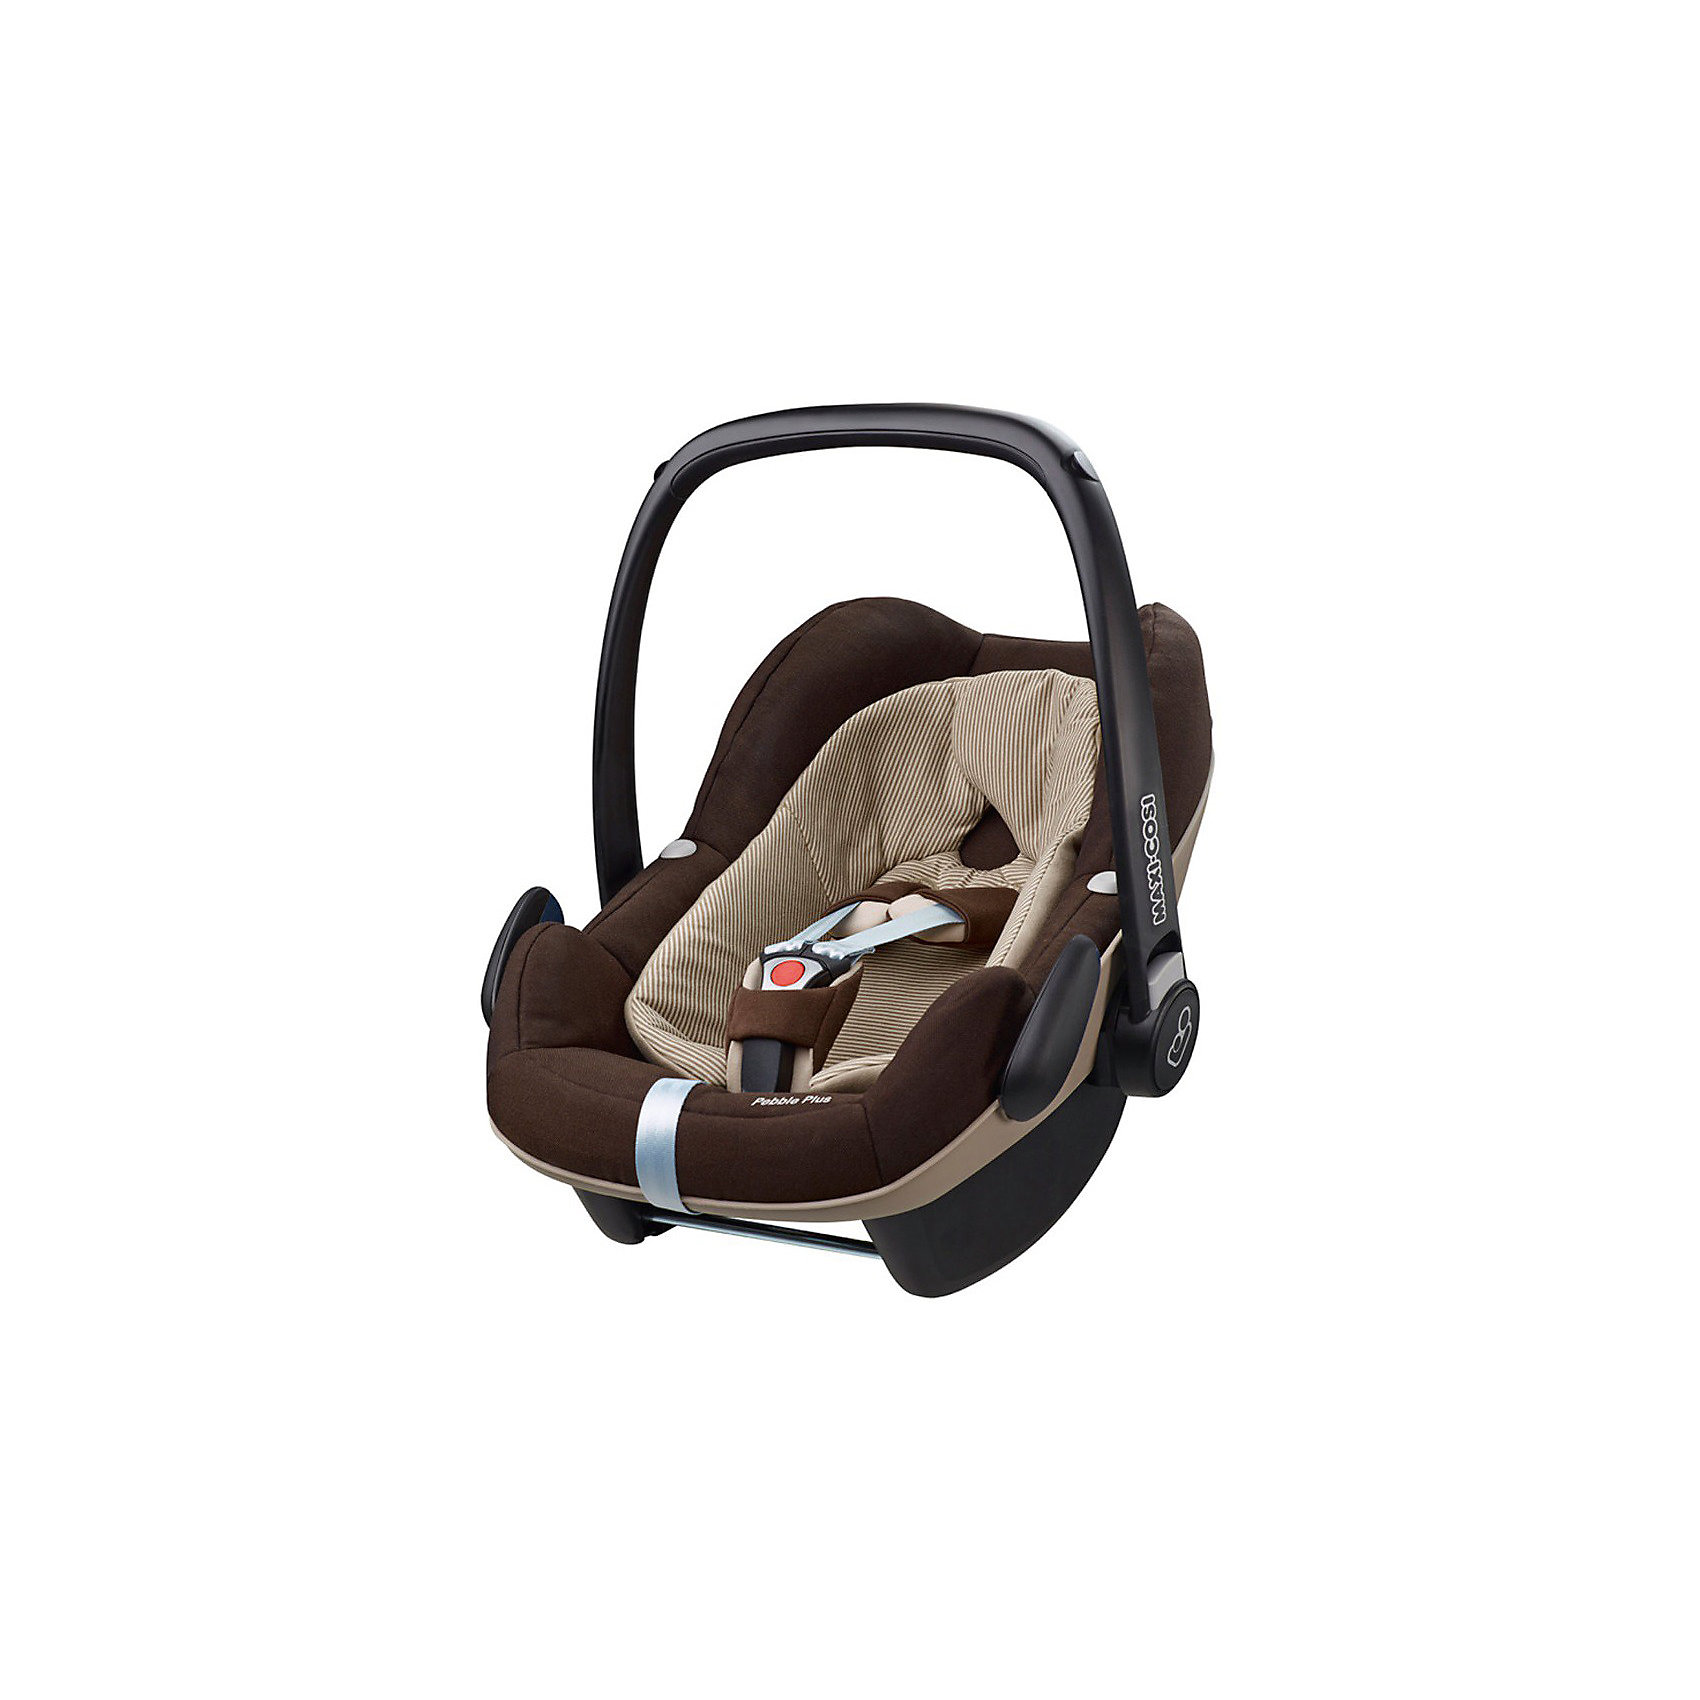 Maxi Cosi Автокресло Pebble Plus 0-13 кг., Maxi-Cosi, Earth Brown stephens nicholas practice tests for cambridge first 2015 fce 1 sb